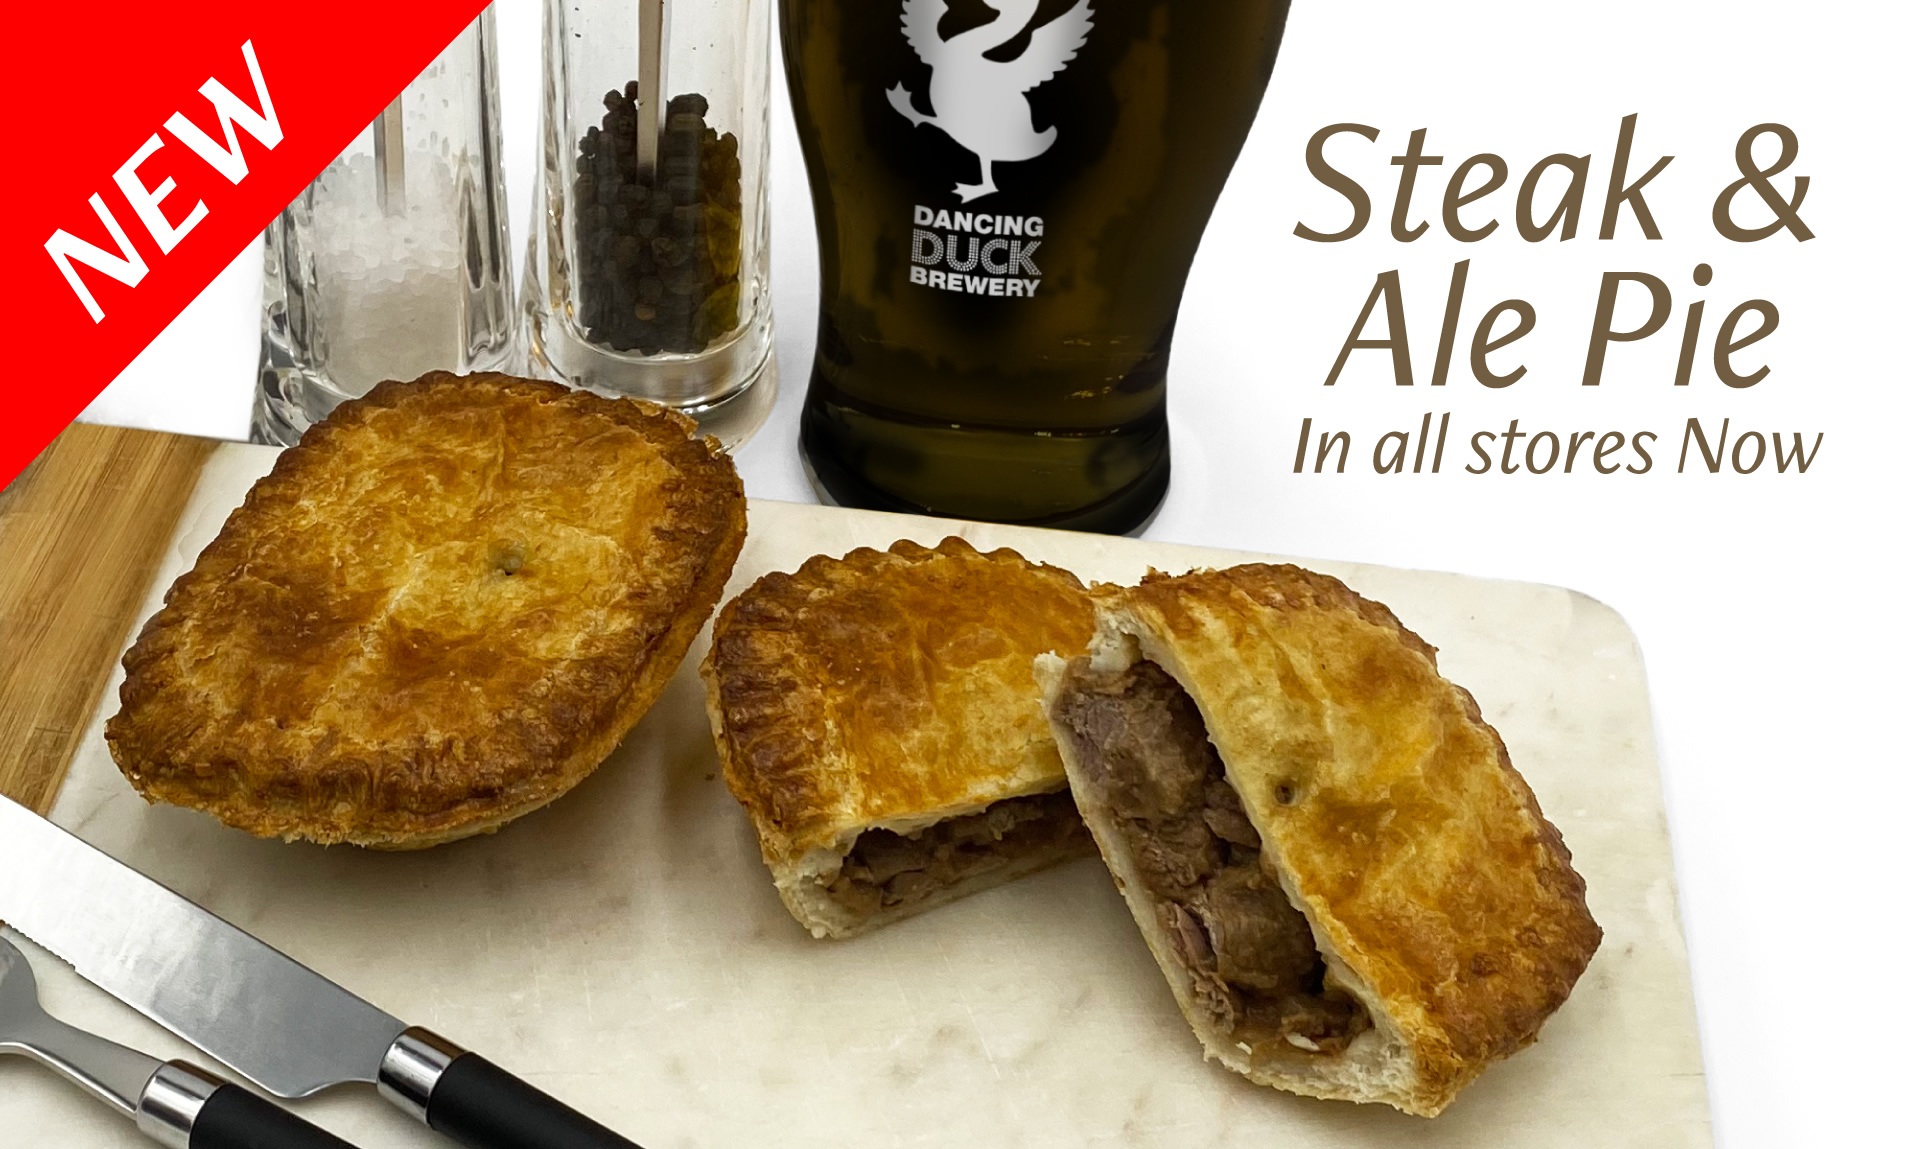 New Steak and Ale Pie in all stores now